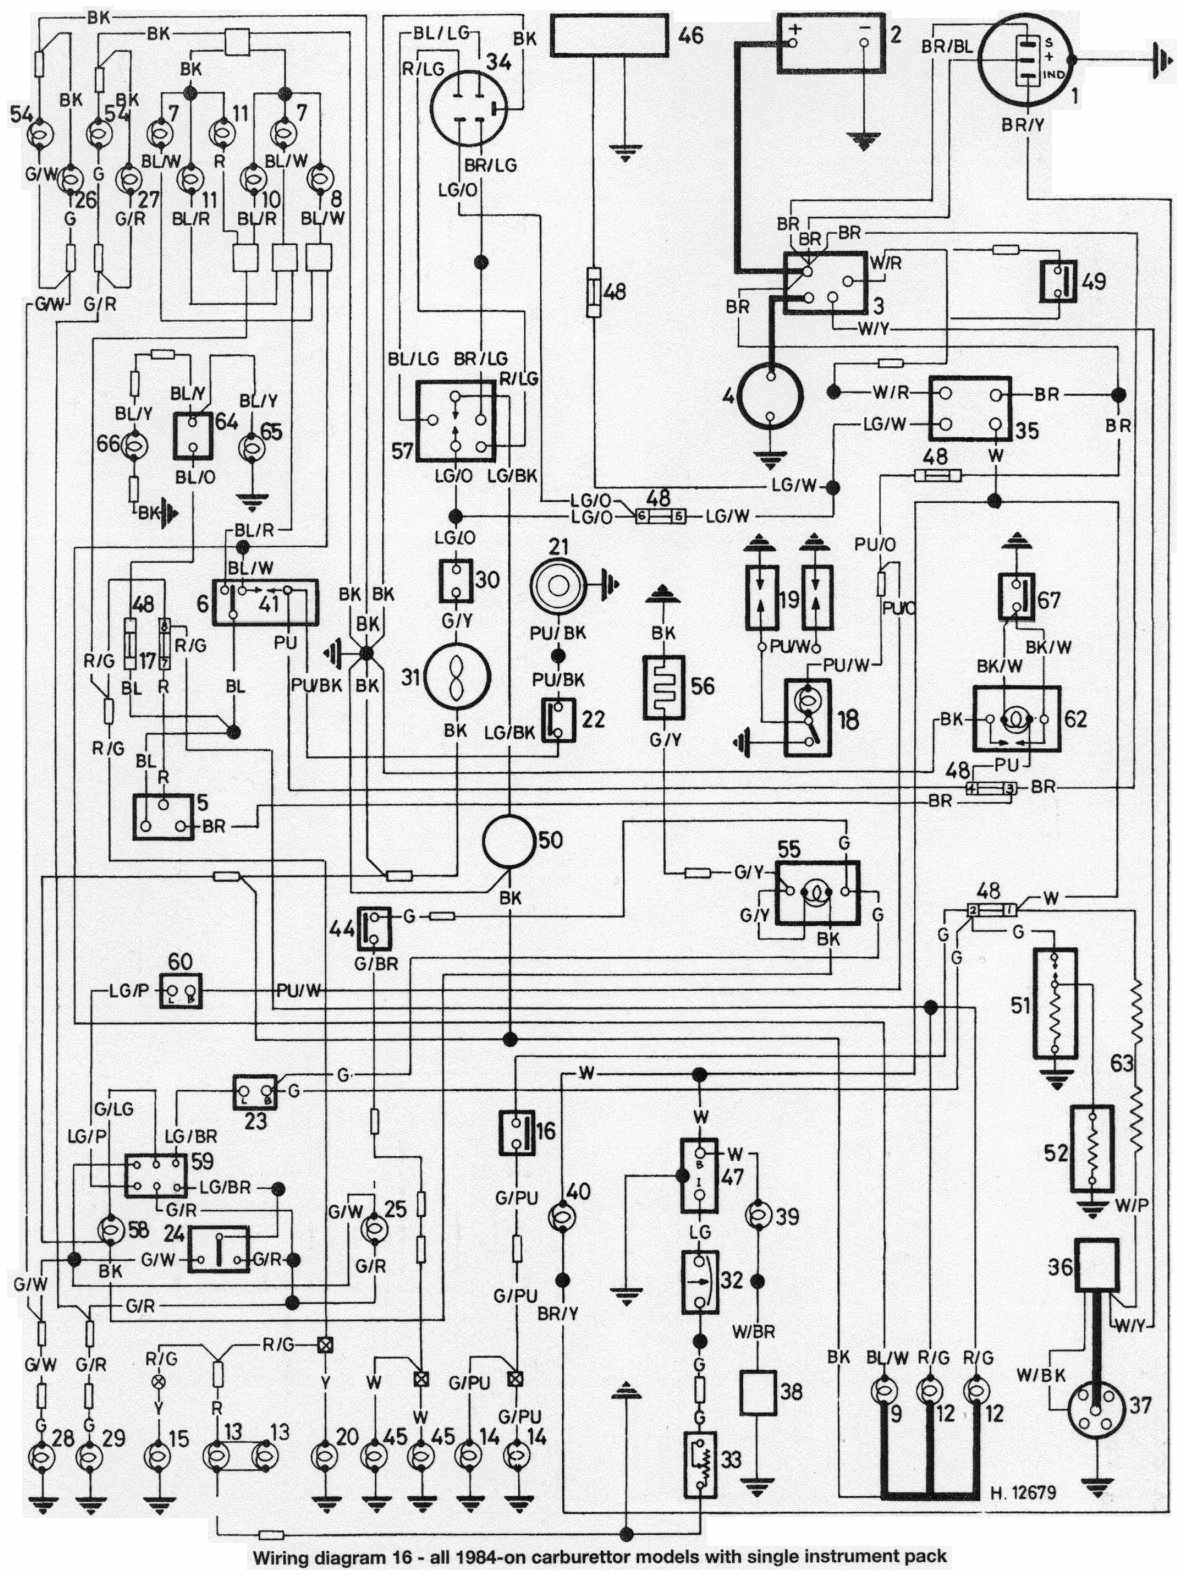 wiring diagram of 1984 onwards all mini series with single instrument pack?t=1508499127 mini car manuals, wiring diagrams pdf & fault codes mini r56 wiring diagram pdf at mifinder.co